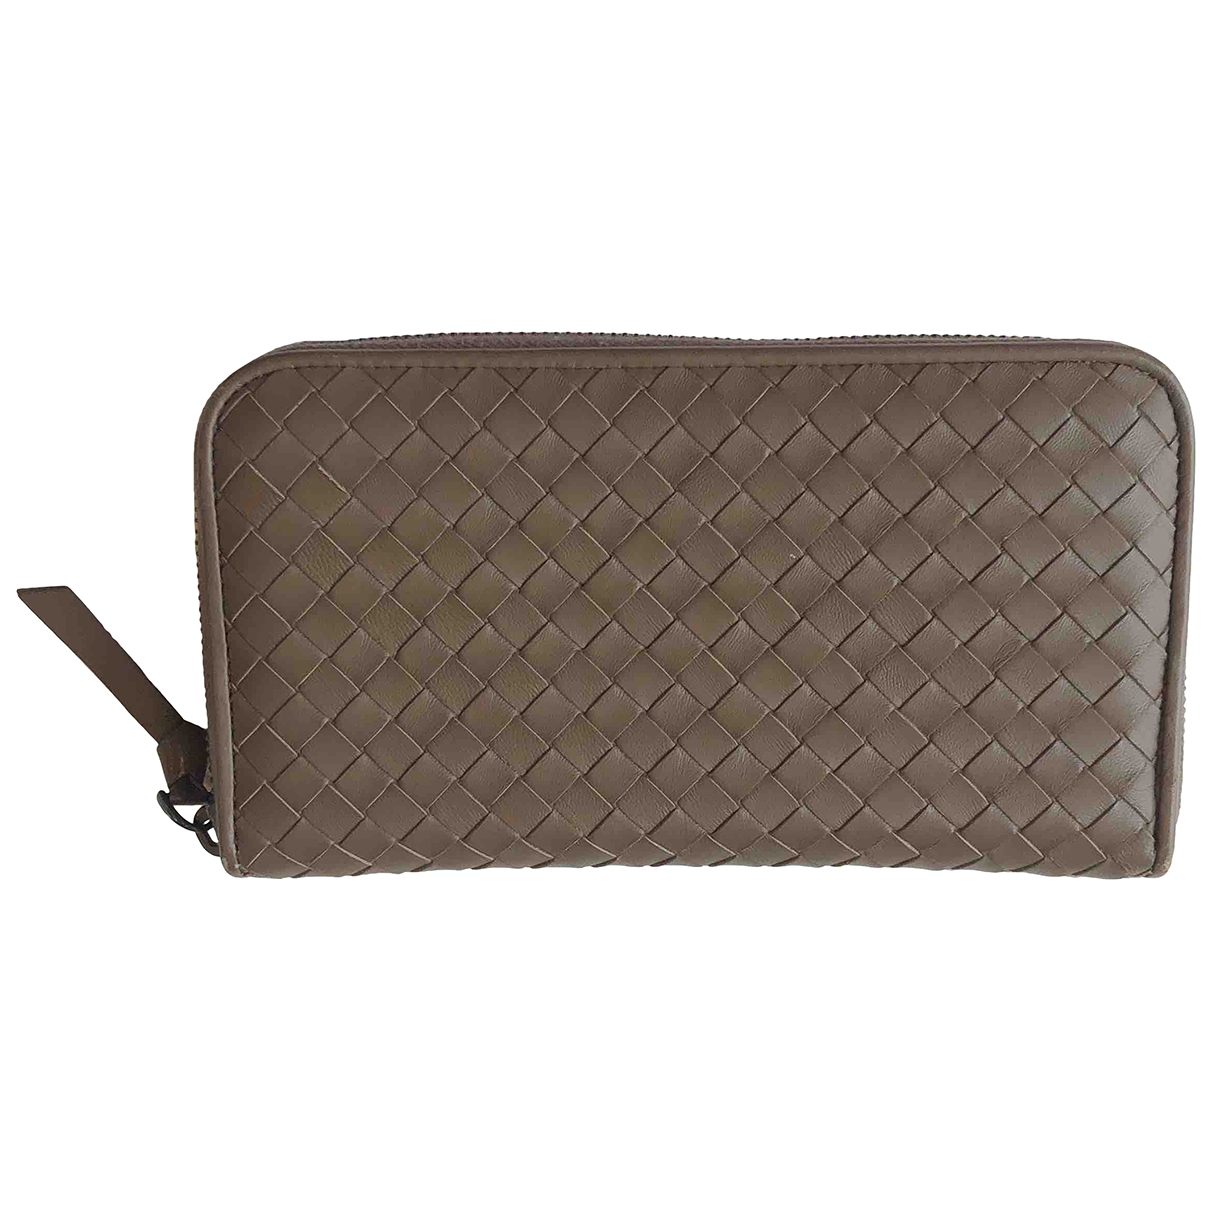 Bottega Veneta Intrecciato Brown Leather wallet for Women \N